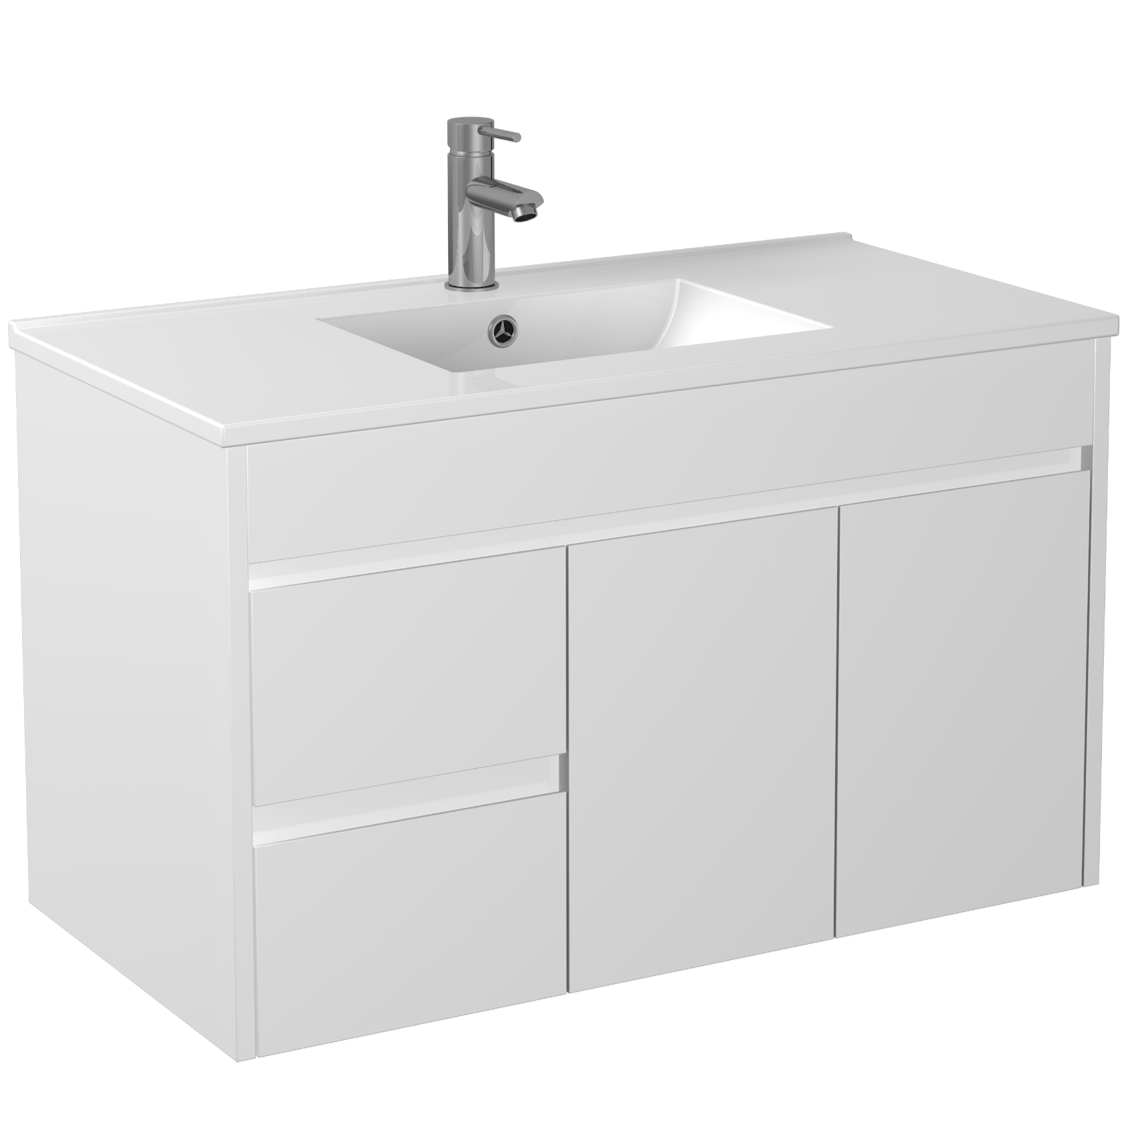 900mm PVC Waterproof Wall Hung Vanity (RH Drawers)